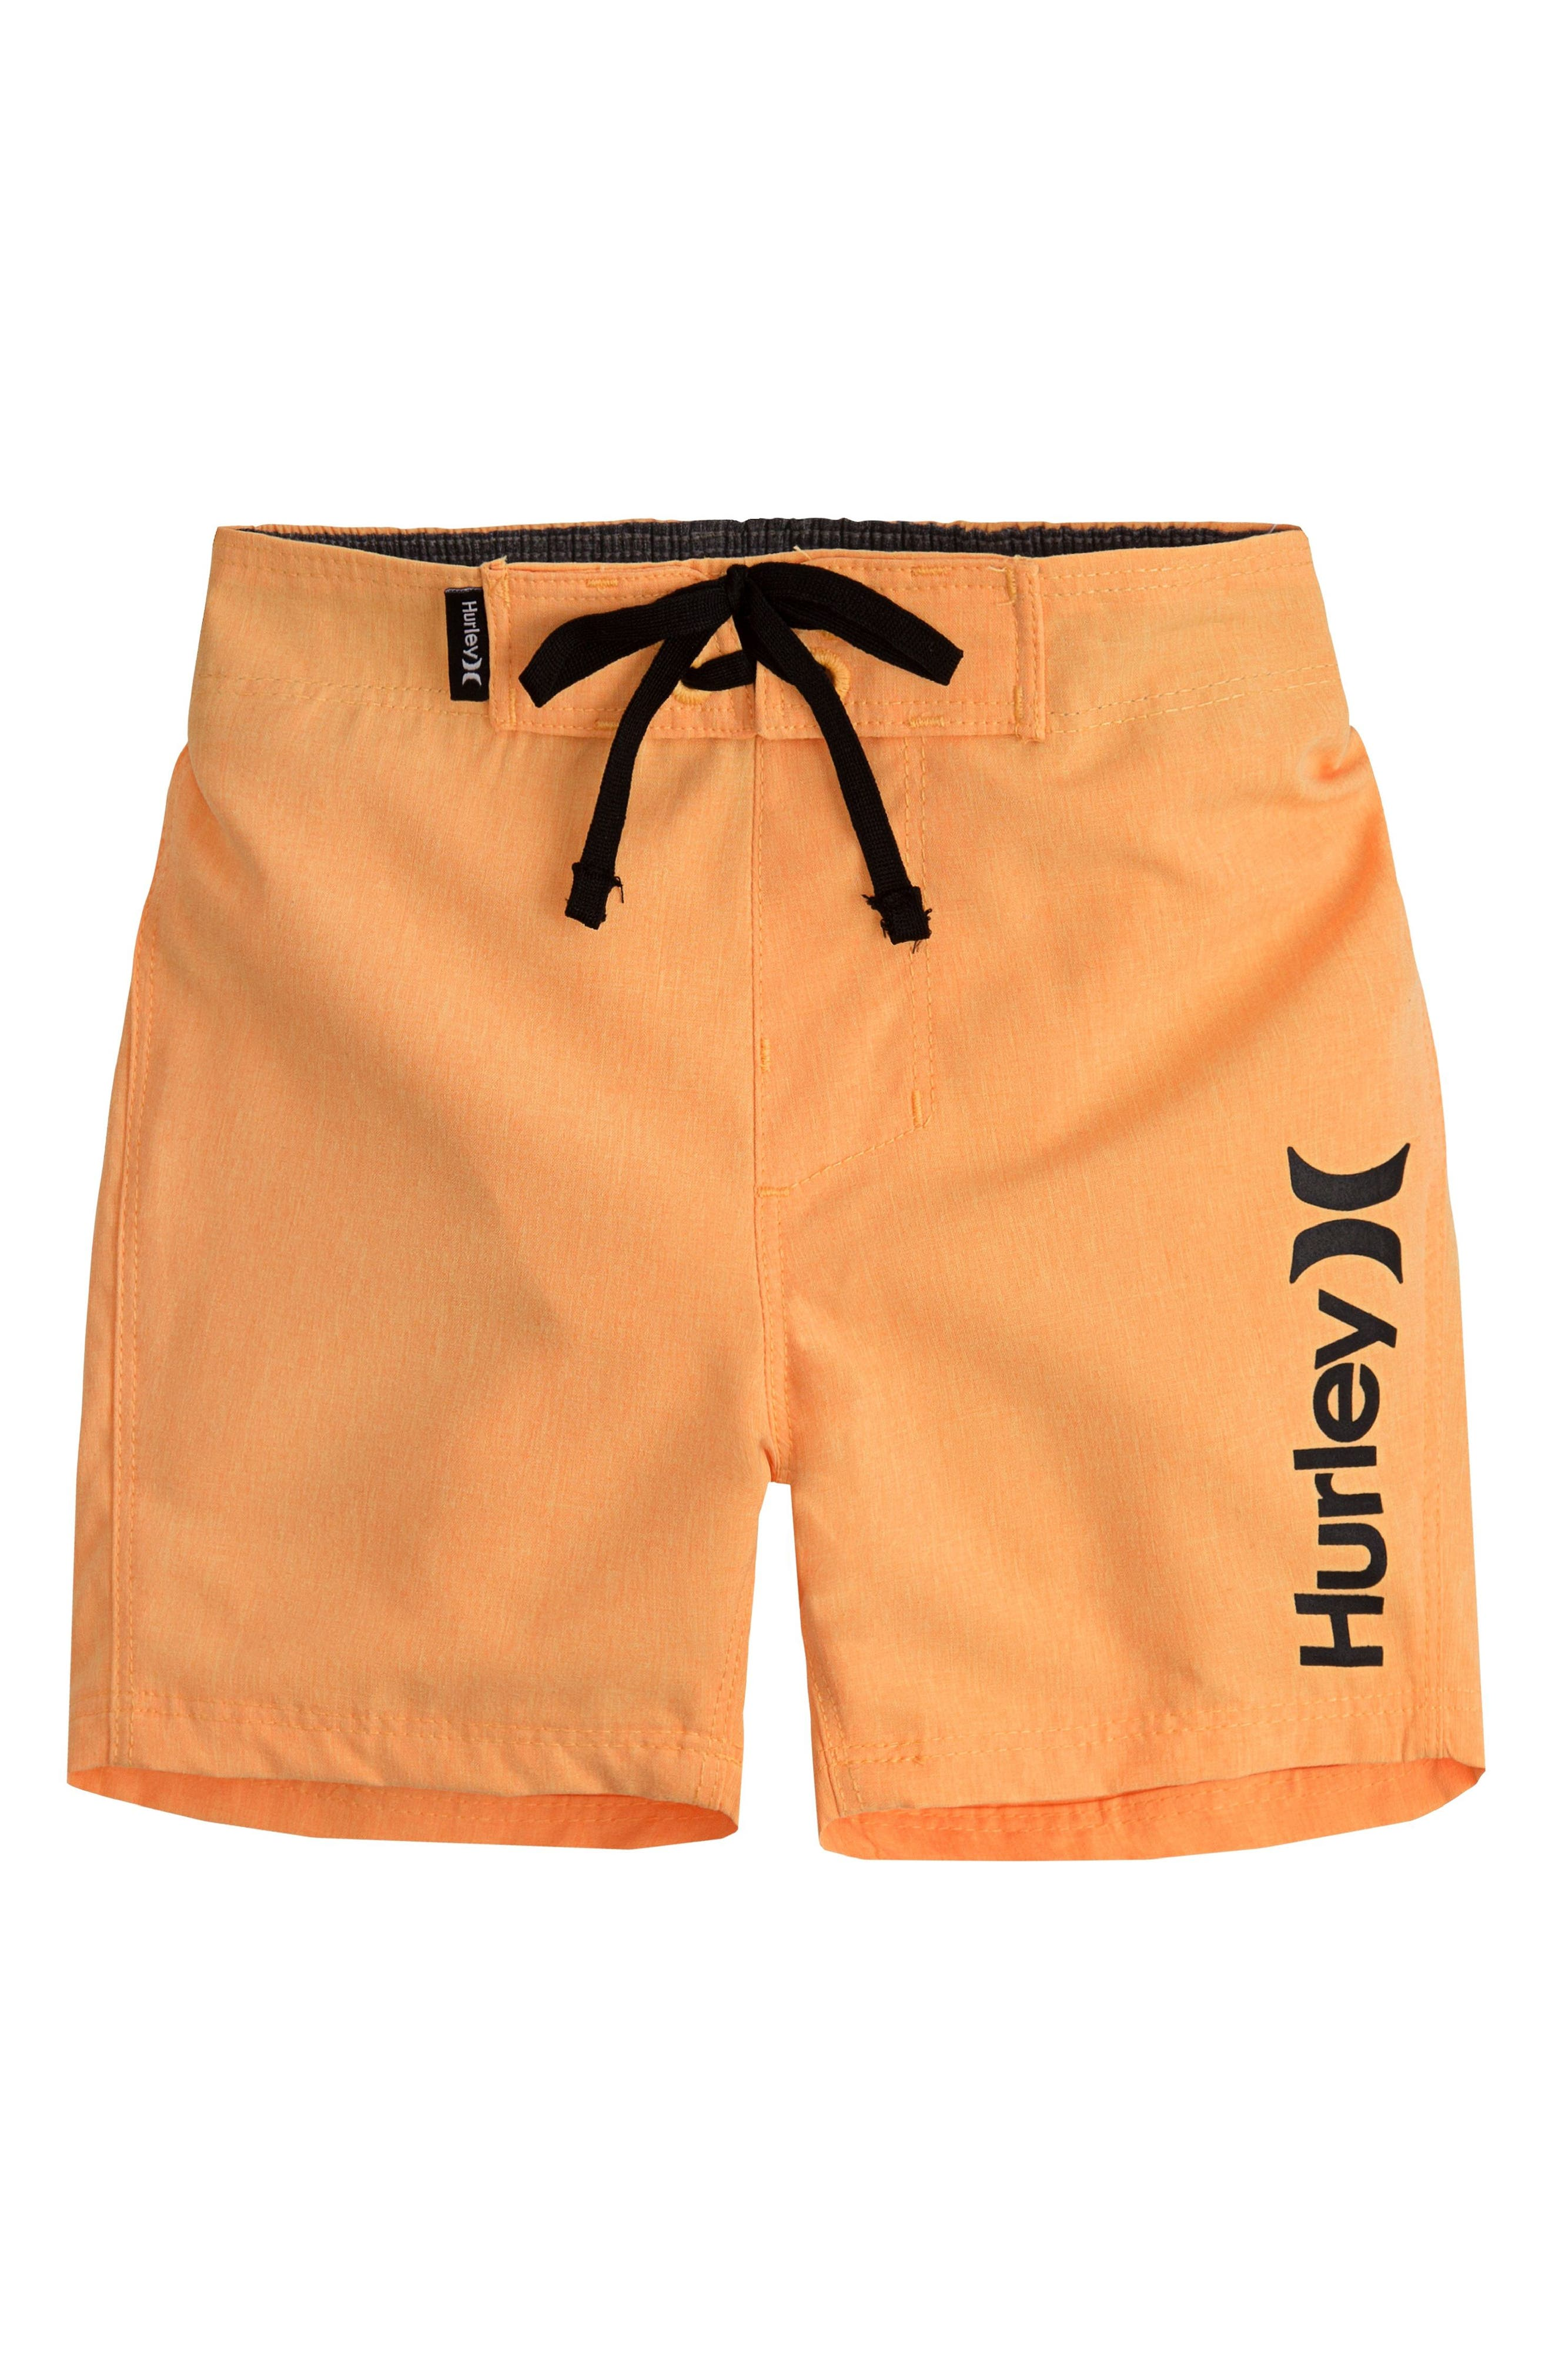 One and Only Dri-FIT Board Shorts,                             Main thumbnail 2, color,